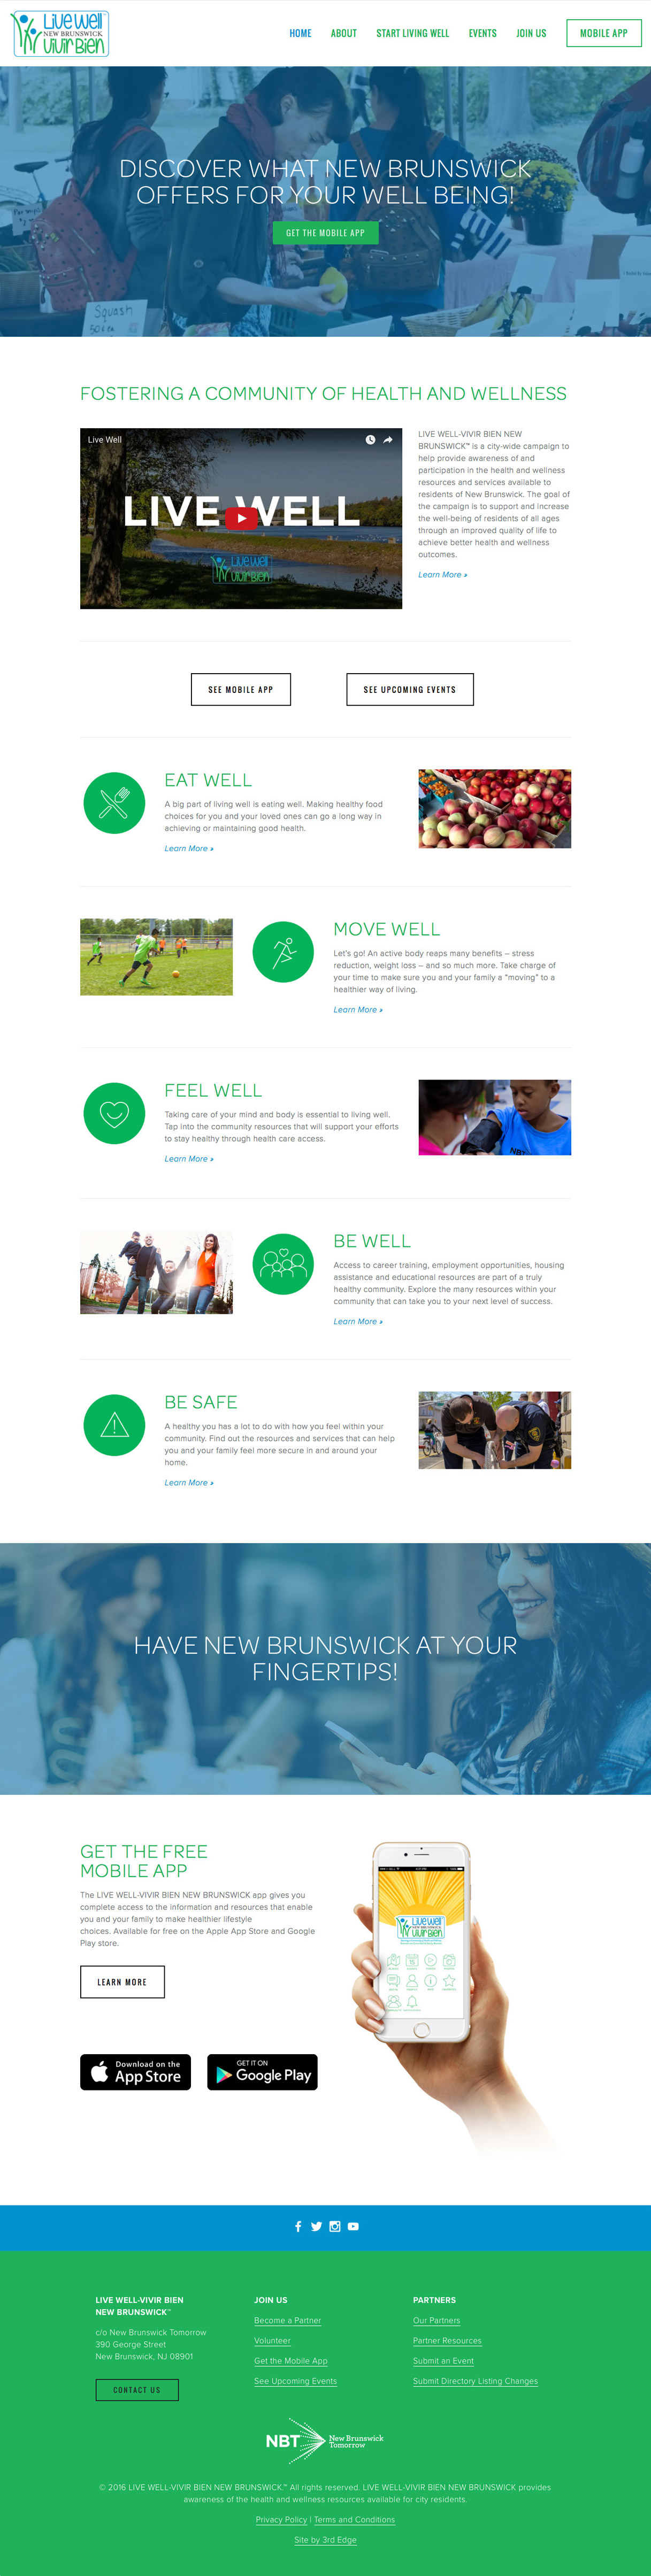 Live Well New Brunswick website home page